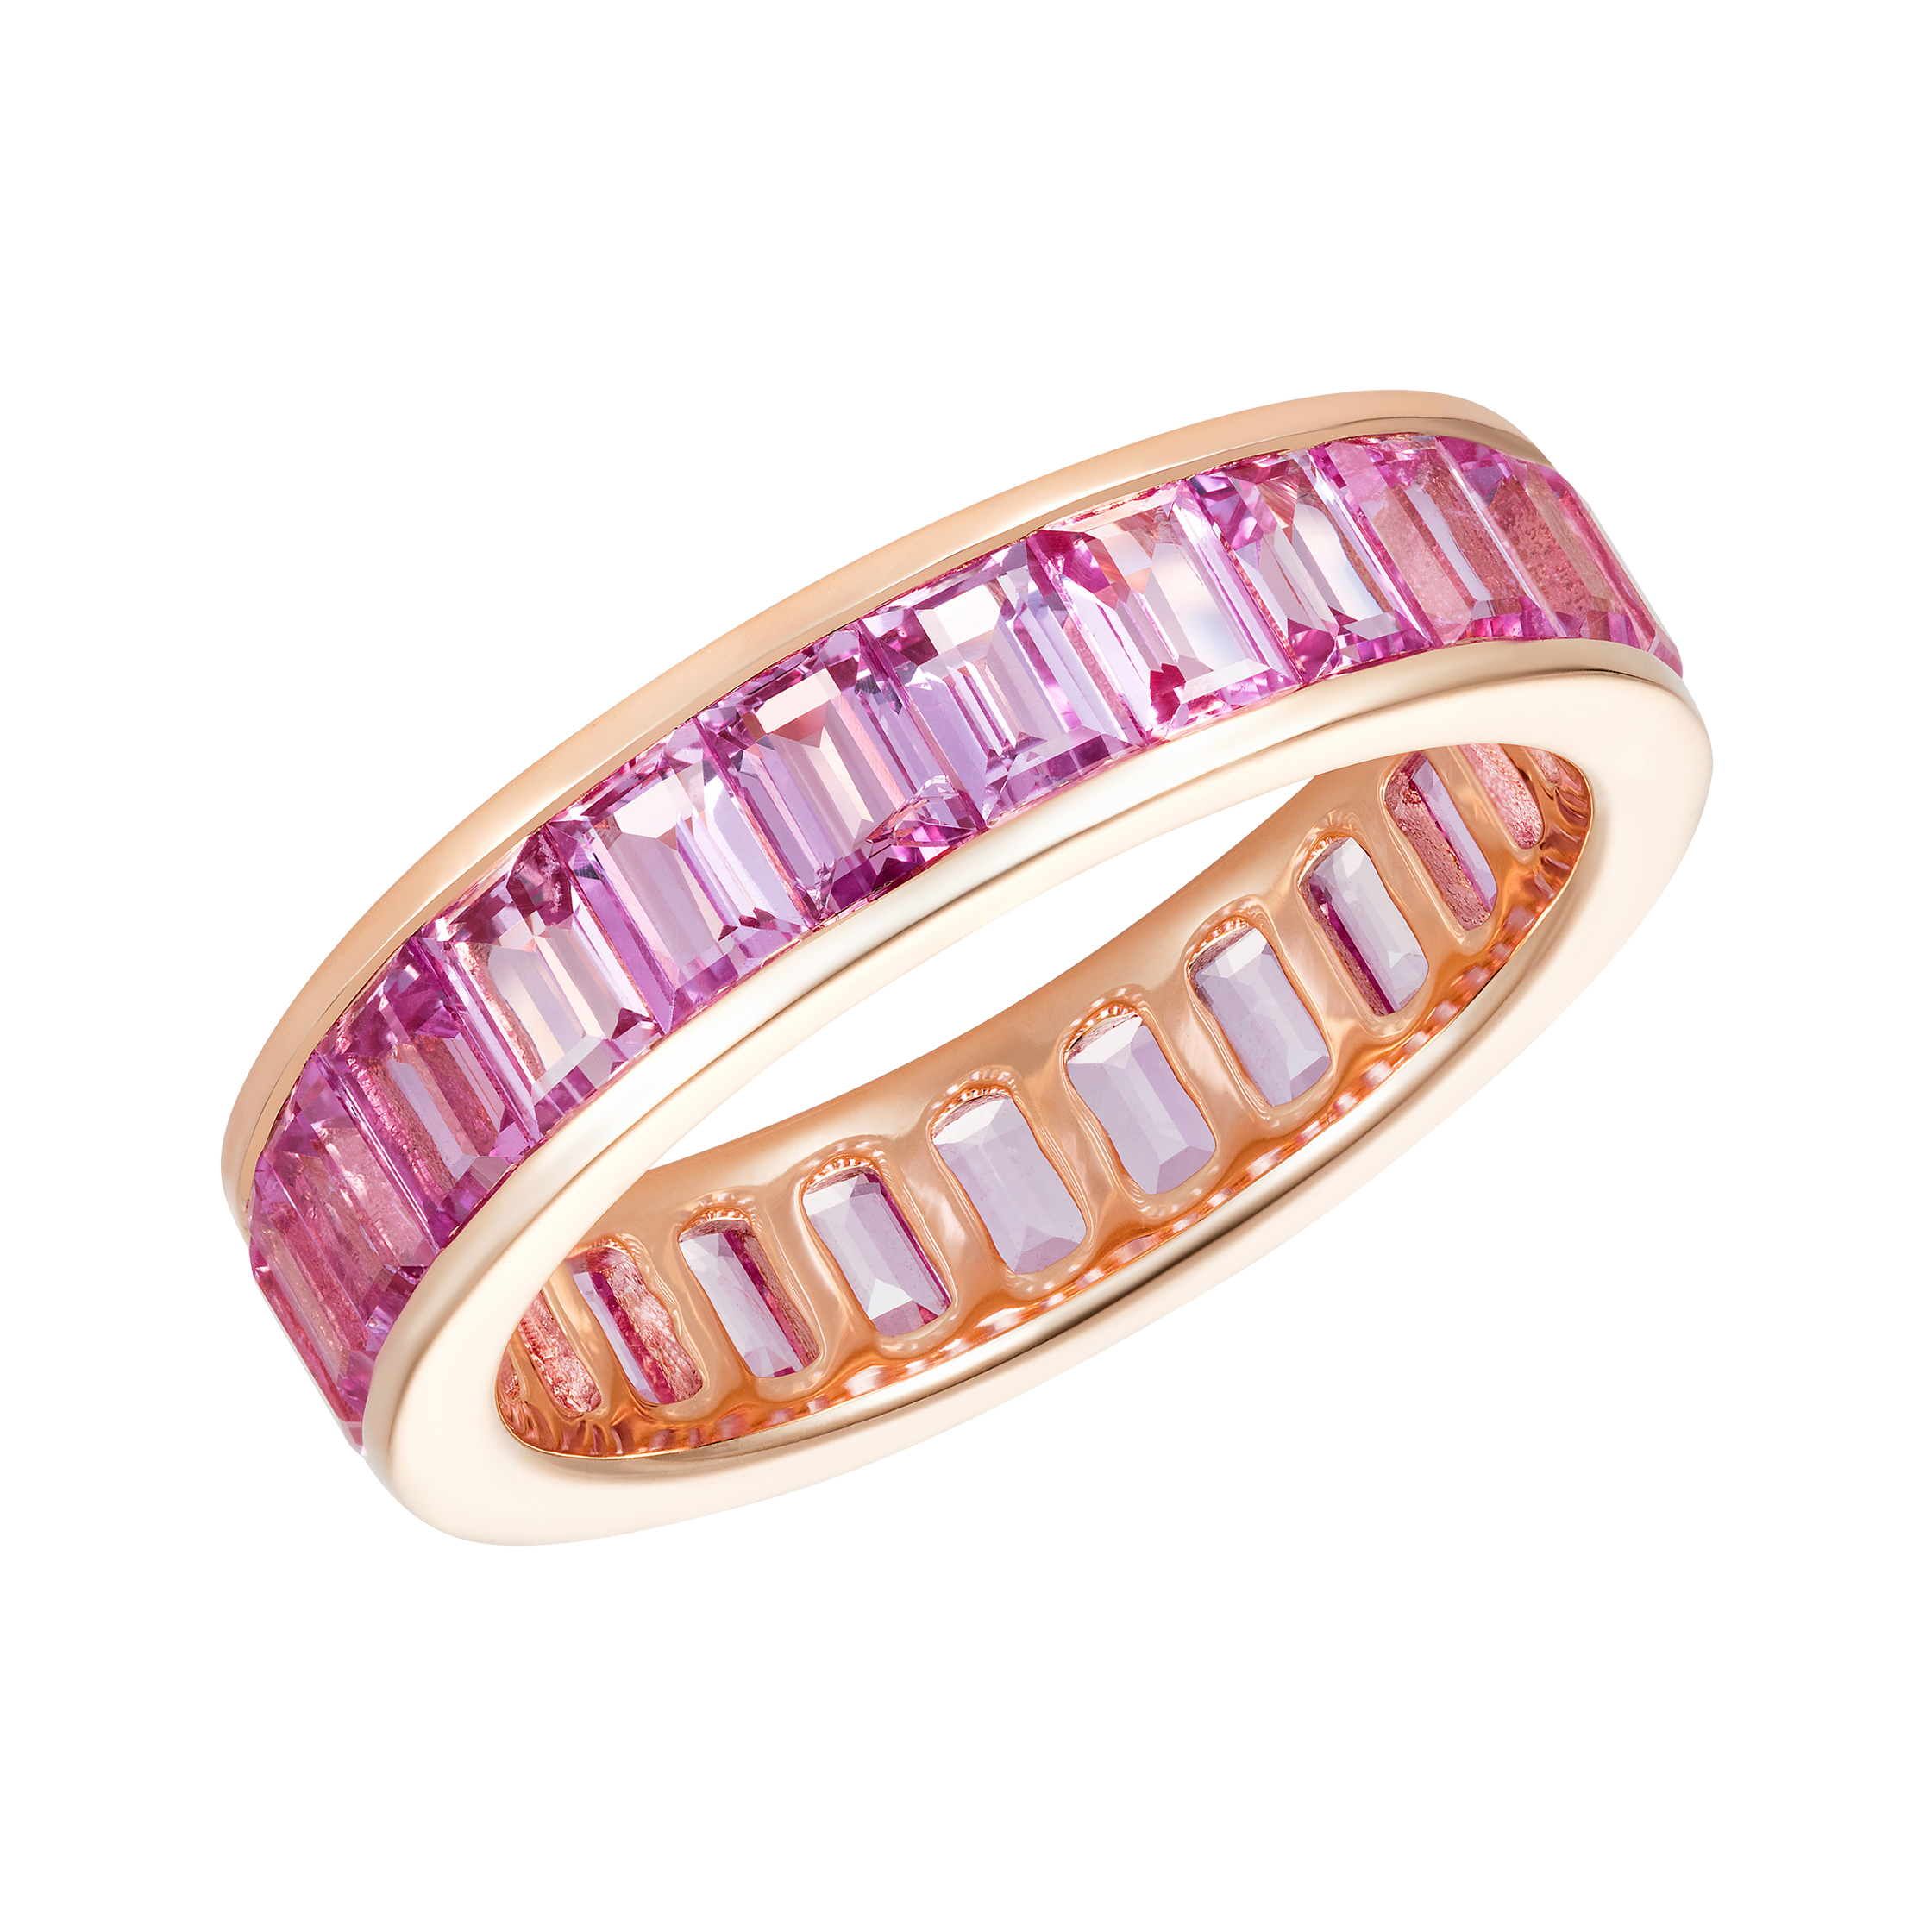 the page sapphire eternity like or pink sparkles nile blue rose bands diamond band crazy it and just topic gold bought